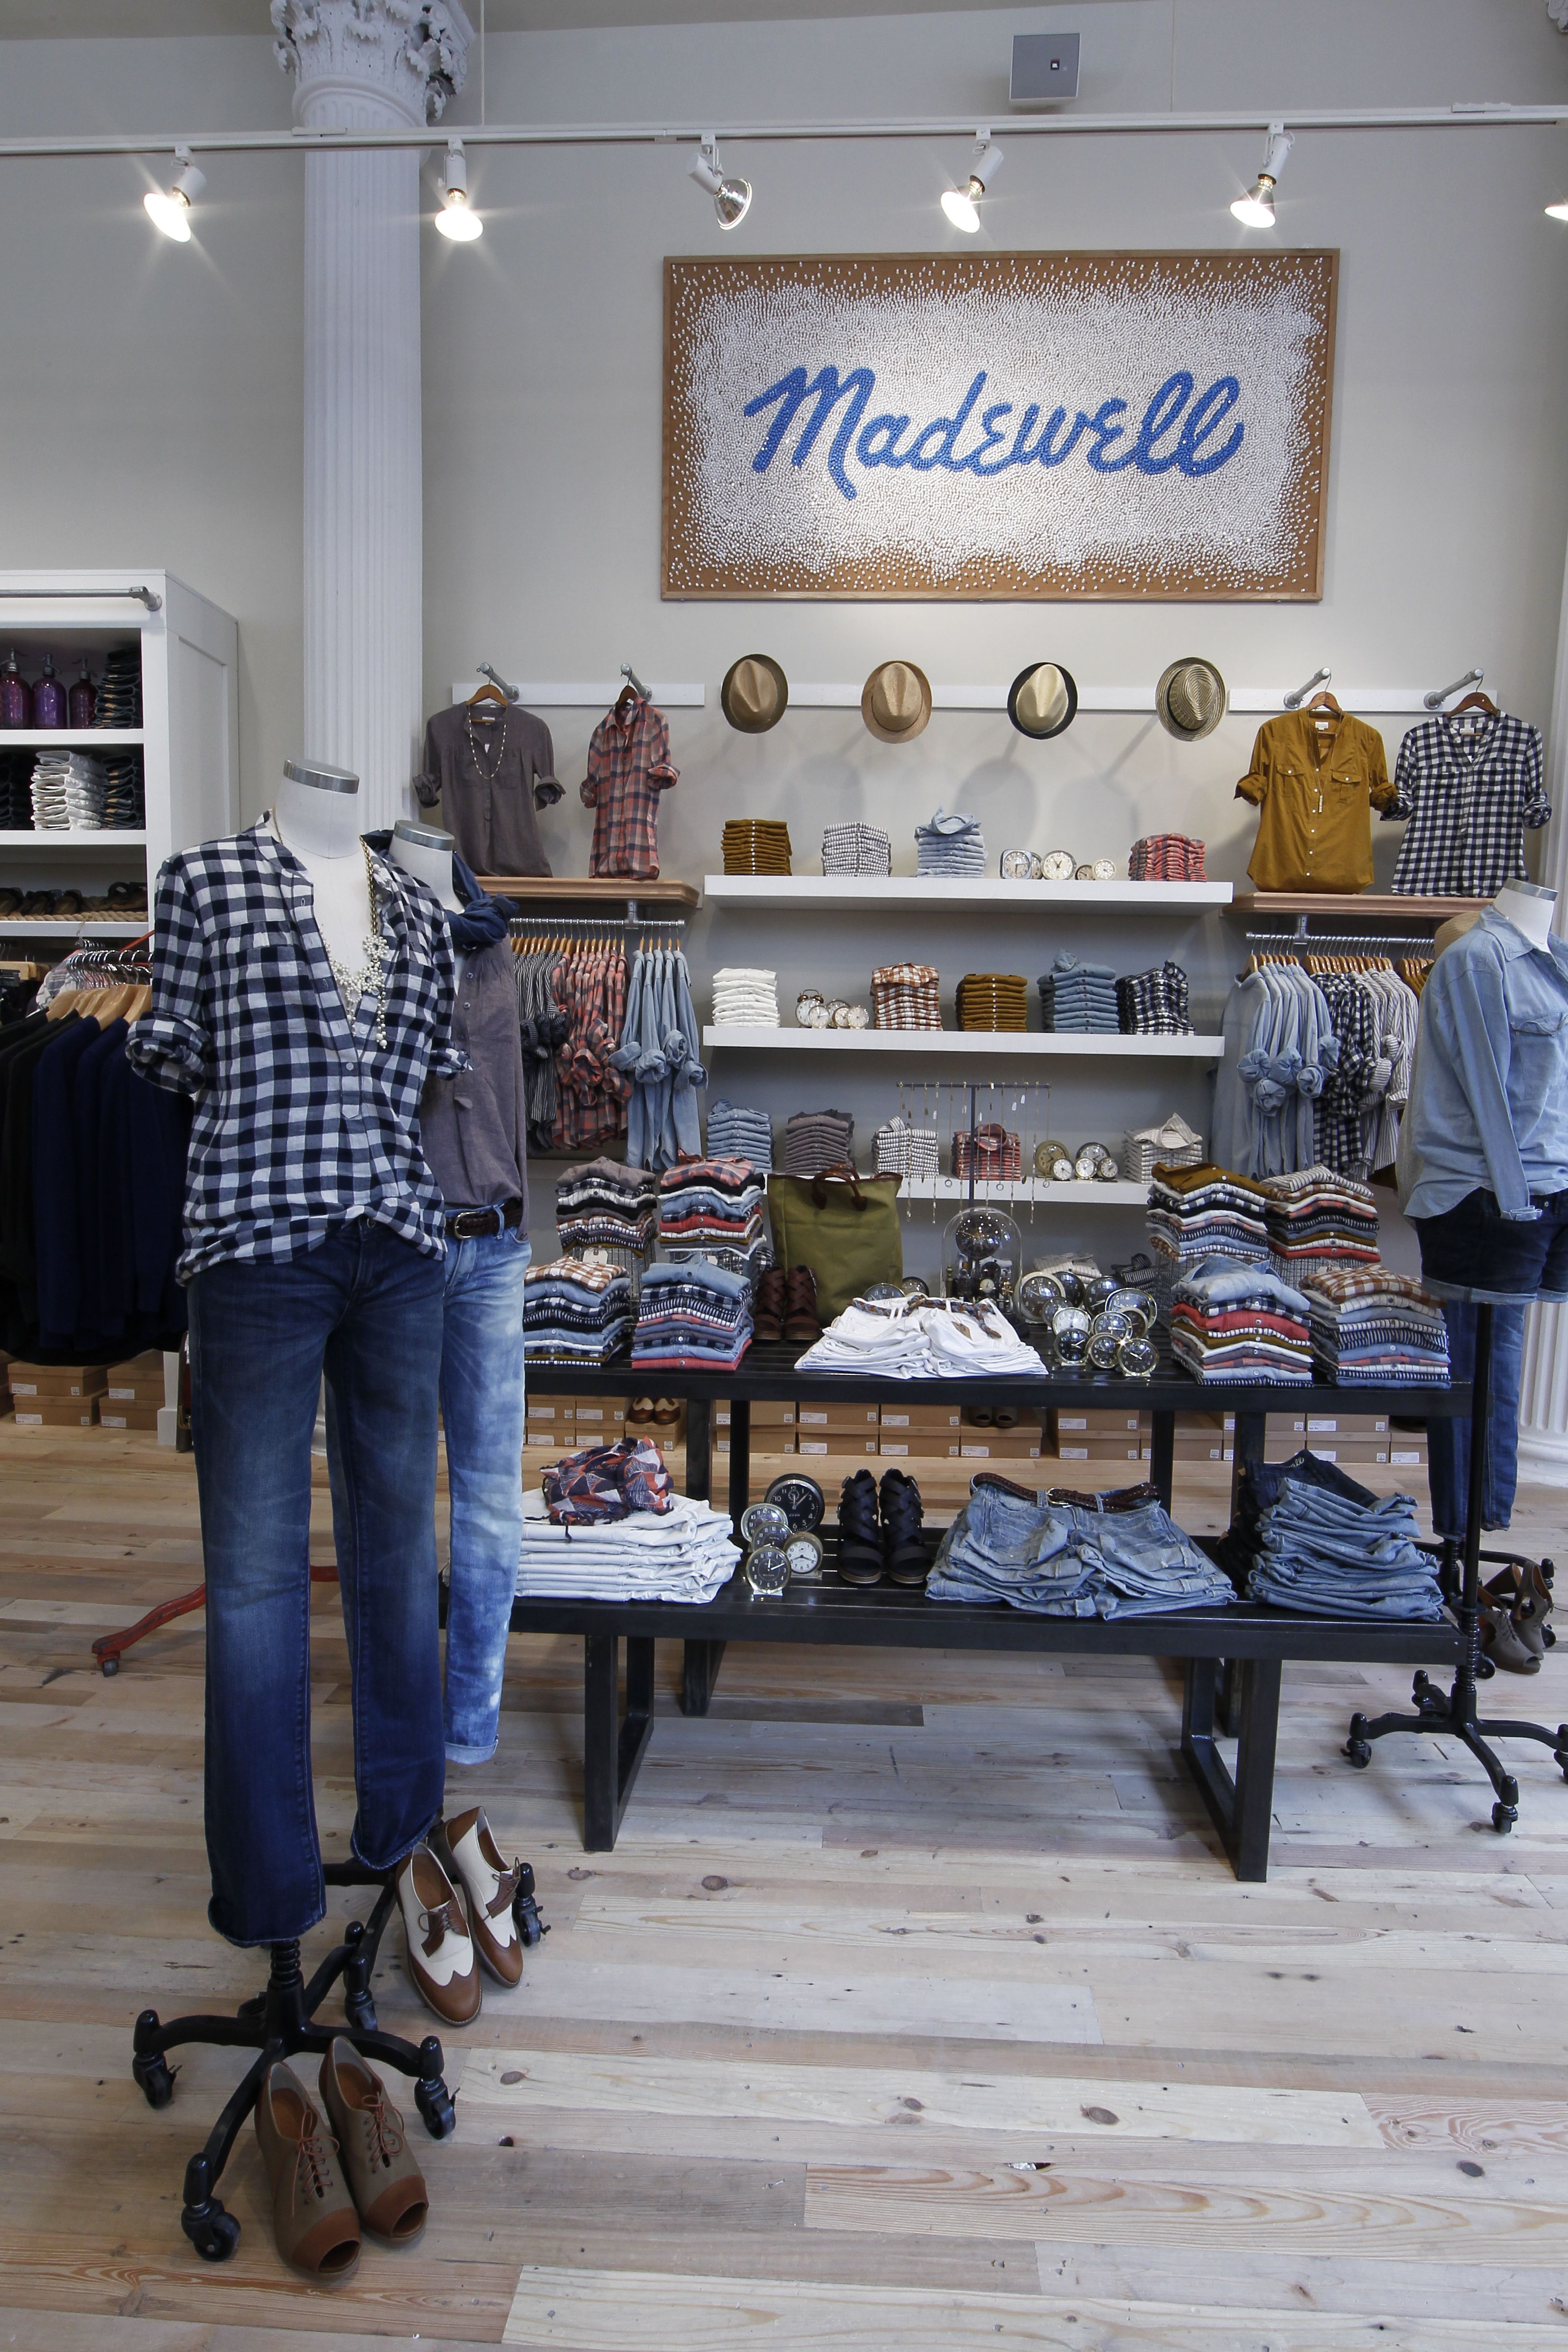 The Madewell store at 115 Fifth Avenue. Madewell Fifth Avenue, New York